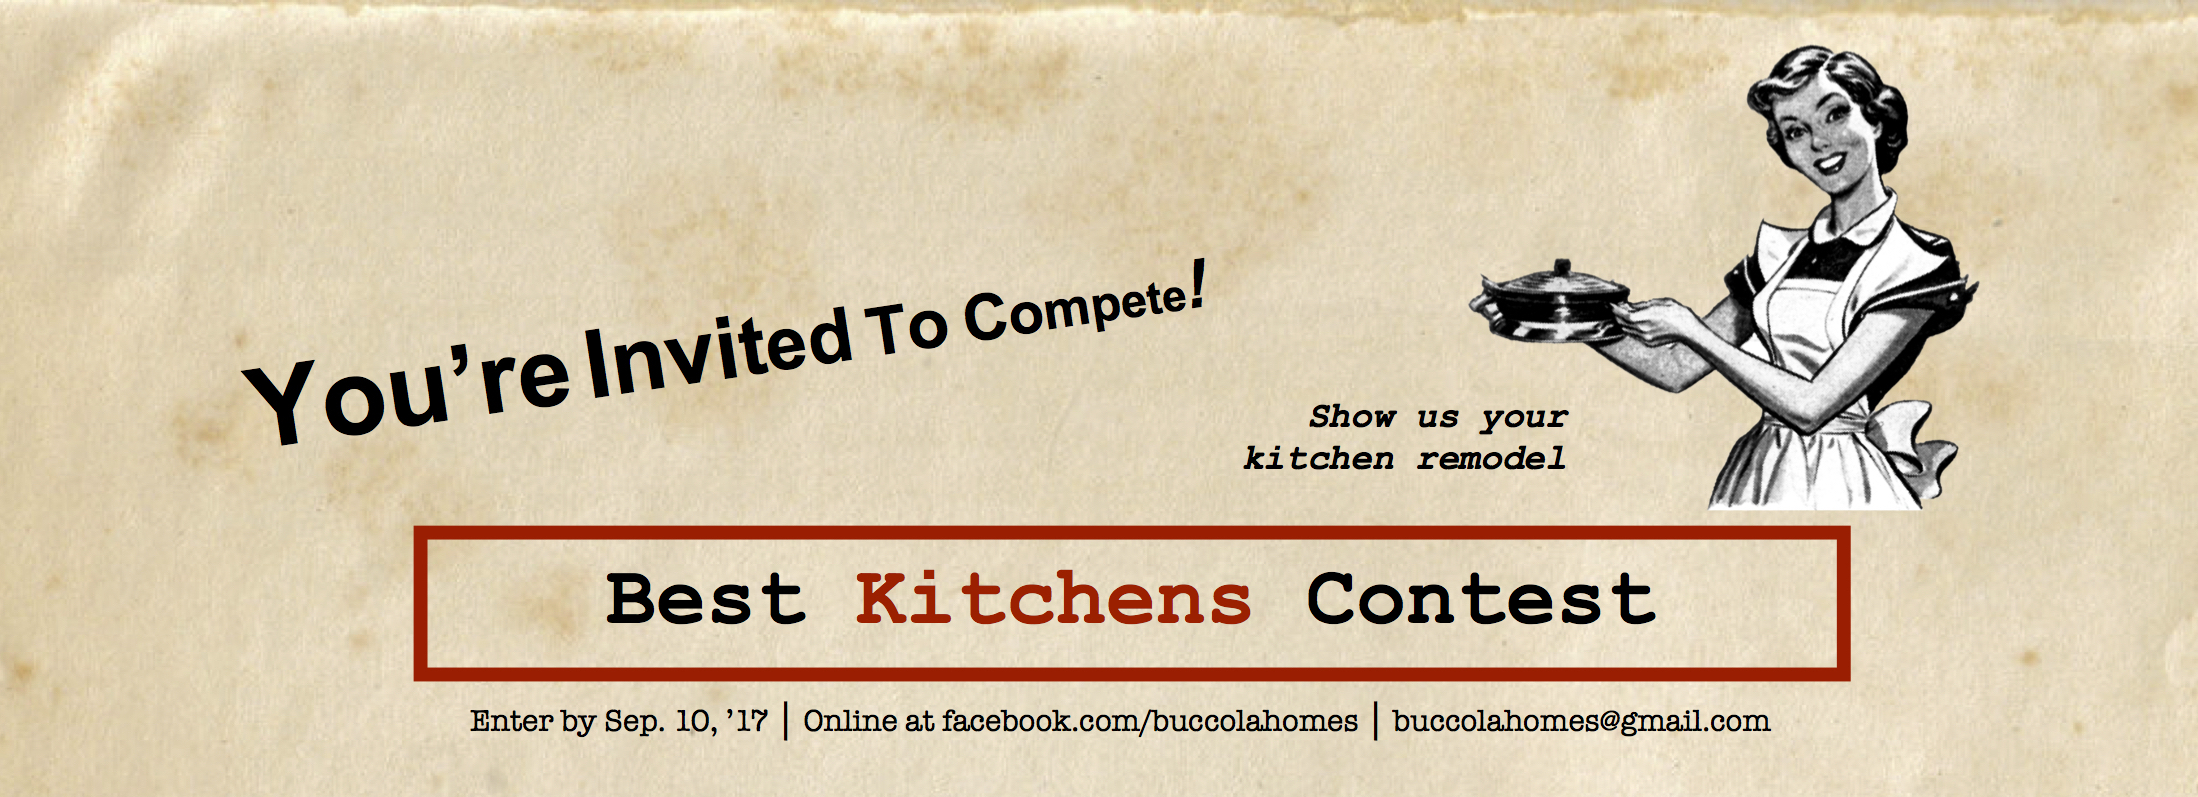 Each Season, Buccola Homes Will Be Introducing A New Household Makeover  Contest! This Summer, Weu0027re Looking For The Best Kitchen Remodels.